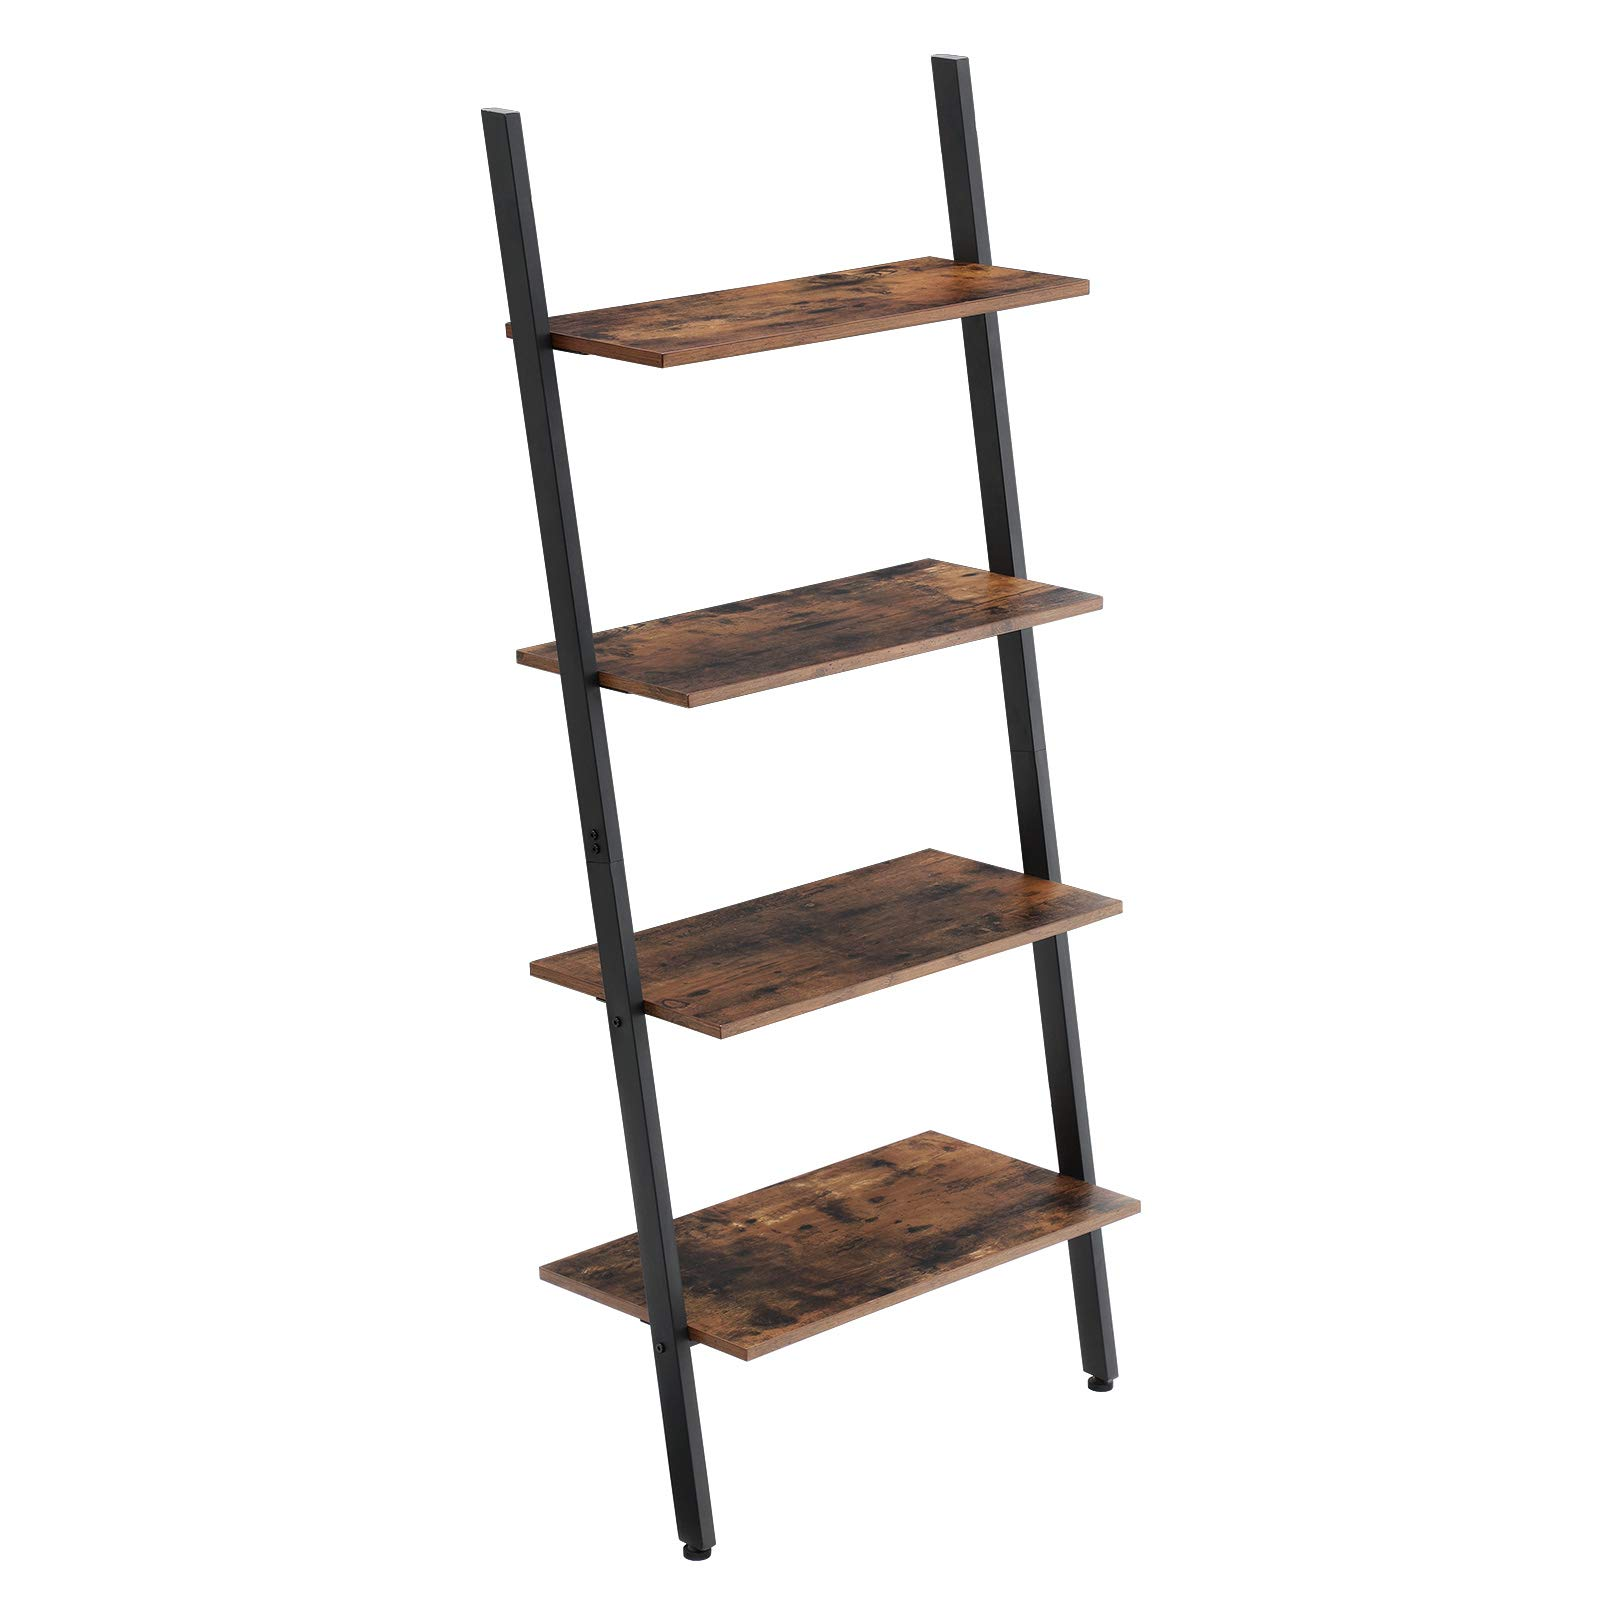 VASAGLE Industrial Ladder Shelf, 4-Tier Bookshelf, Storage Rack Shelves, for Living Room, Kitchen, Office, Iron, Stable, Sloping, Leaning Against The Wall, Rustic Brown ULLS43BX by VASAGLE